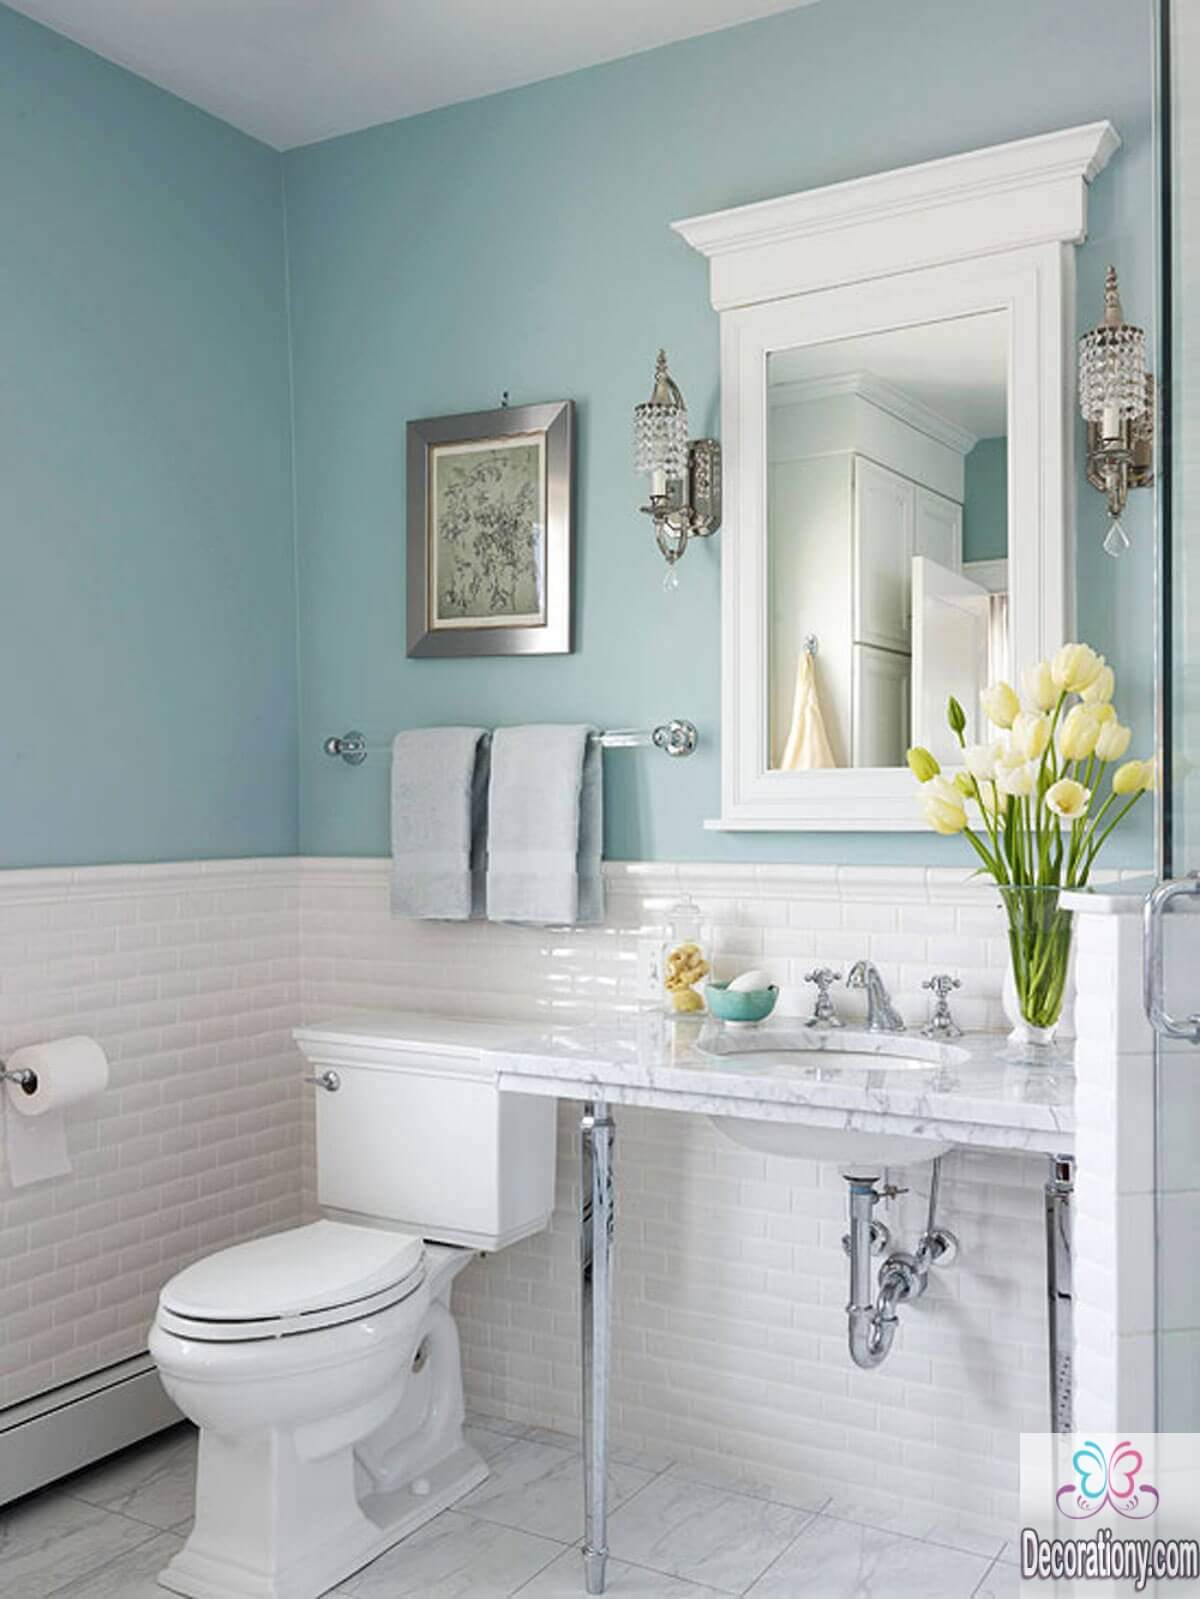 10 affordable colors for small bathrooms decoration y for Best small bathroom layout